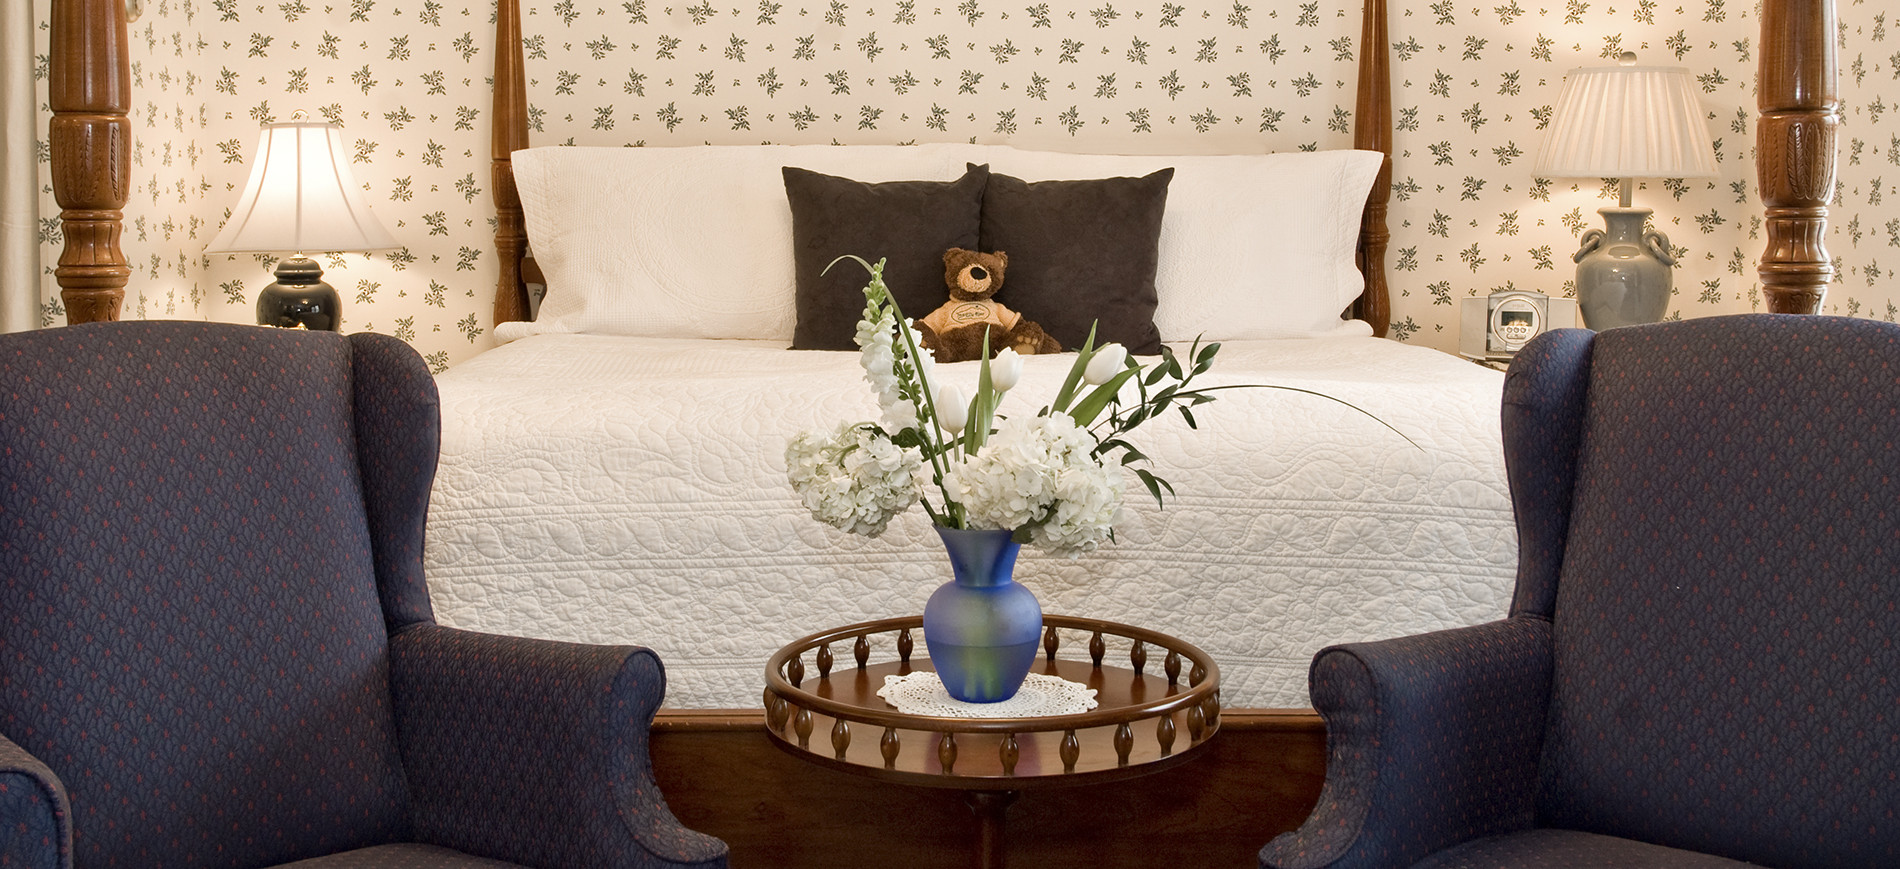 Guest room with white & blue wallpaper, king bed with white bedding in back of blue wing chairs with round table with flowers